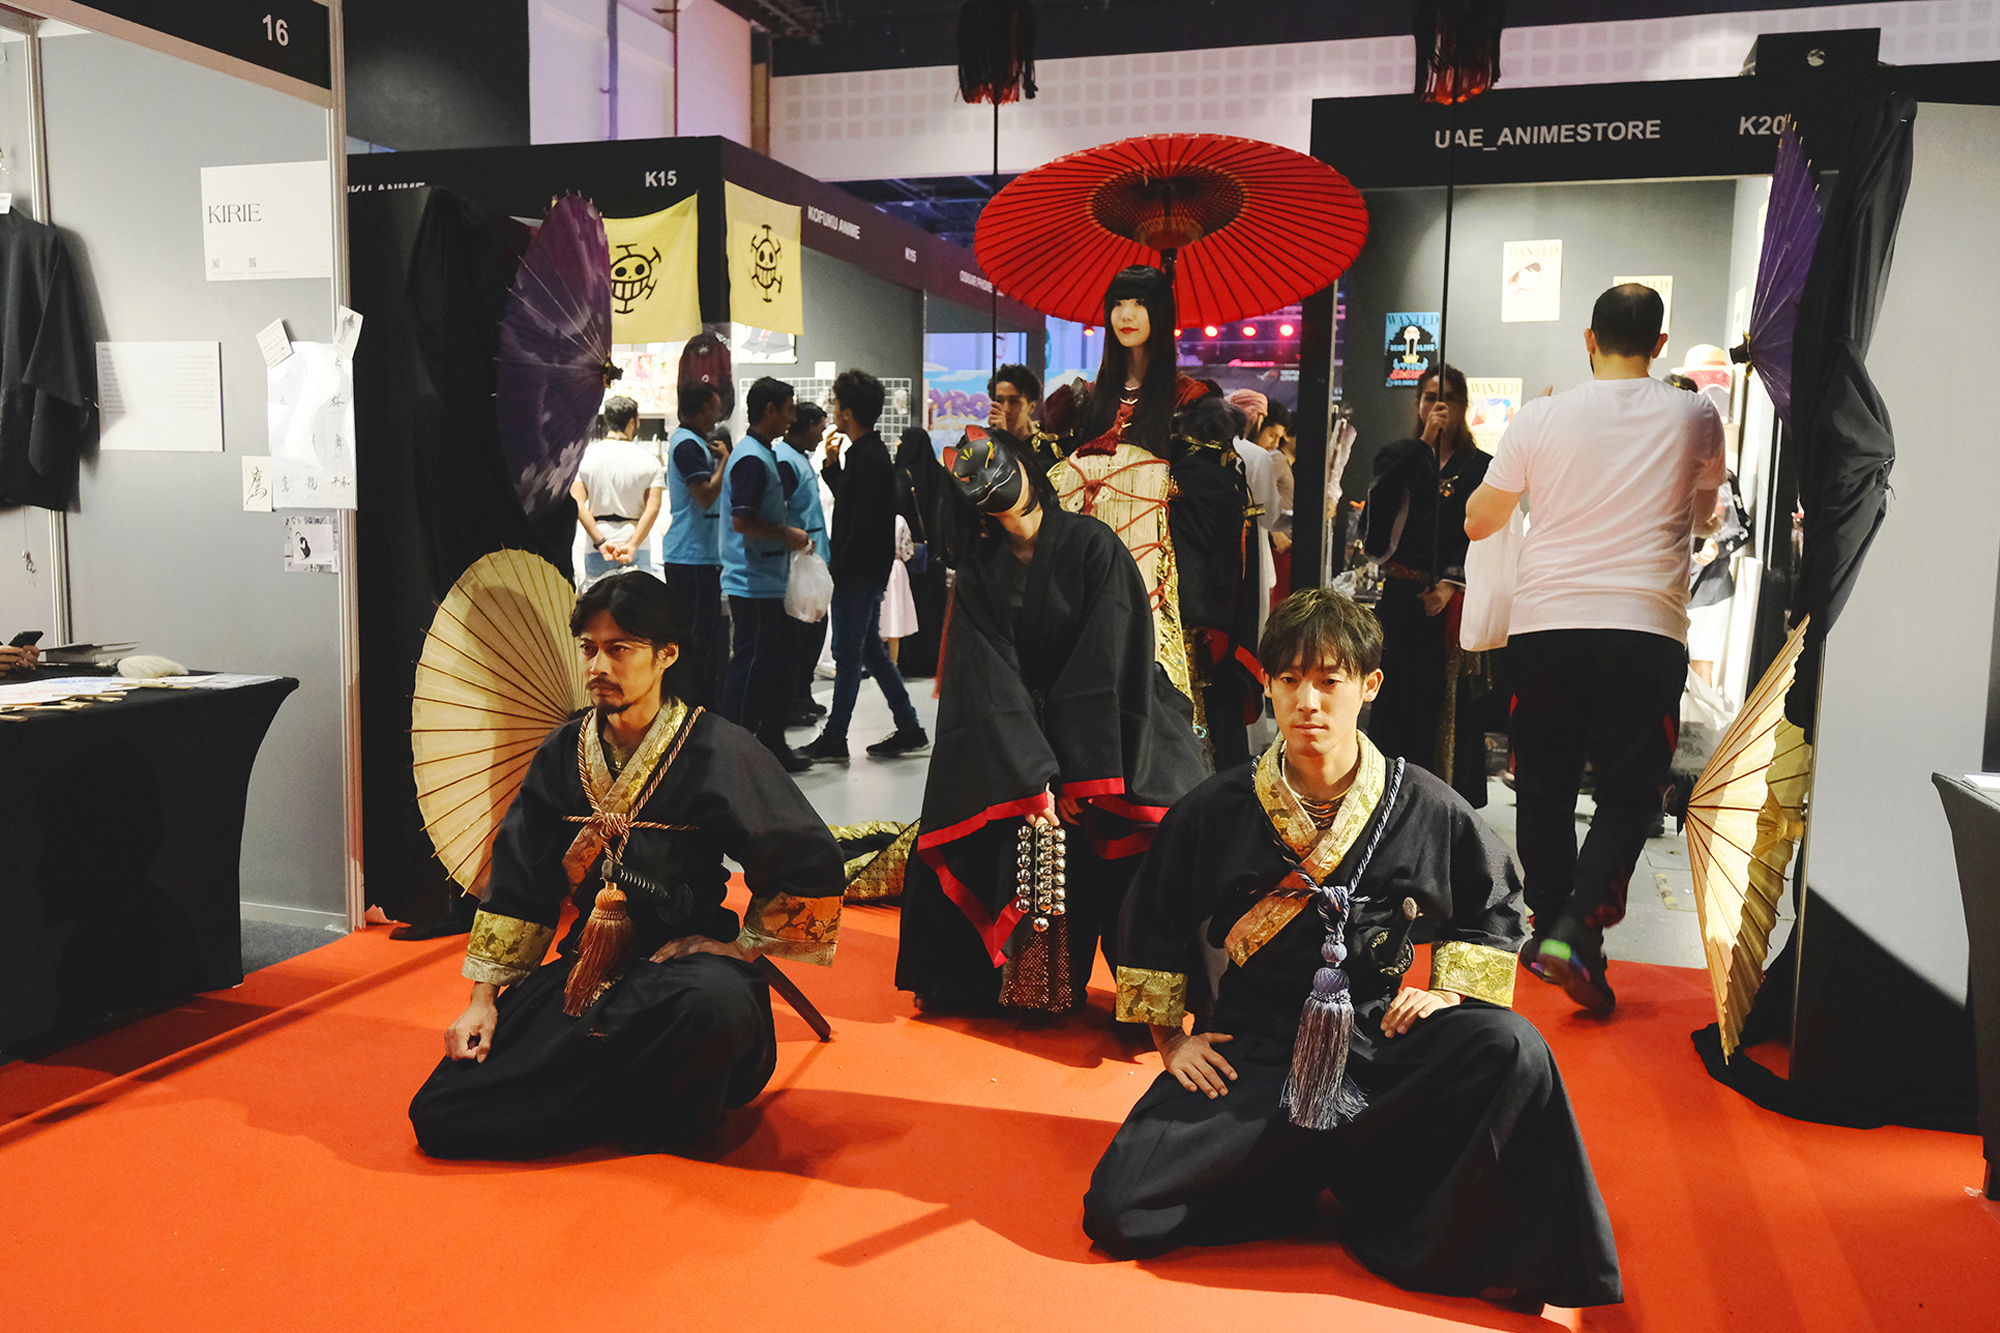 """20181105【Middle East Games Con/Traditional Cultures】Middle East Games Con 2018 In Abu Dhabi """"MIYABI"""" 『KIRIE』Stage Report!"""